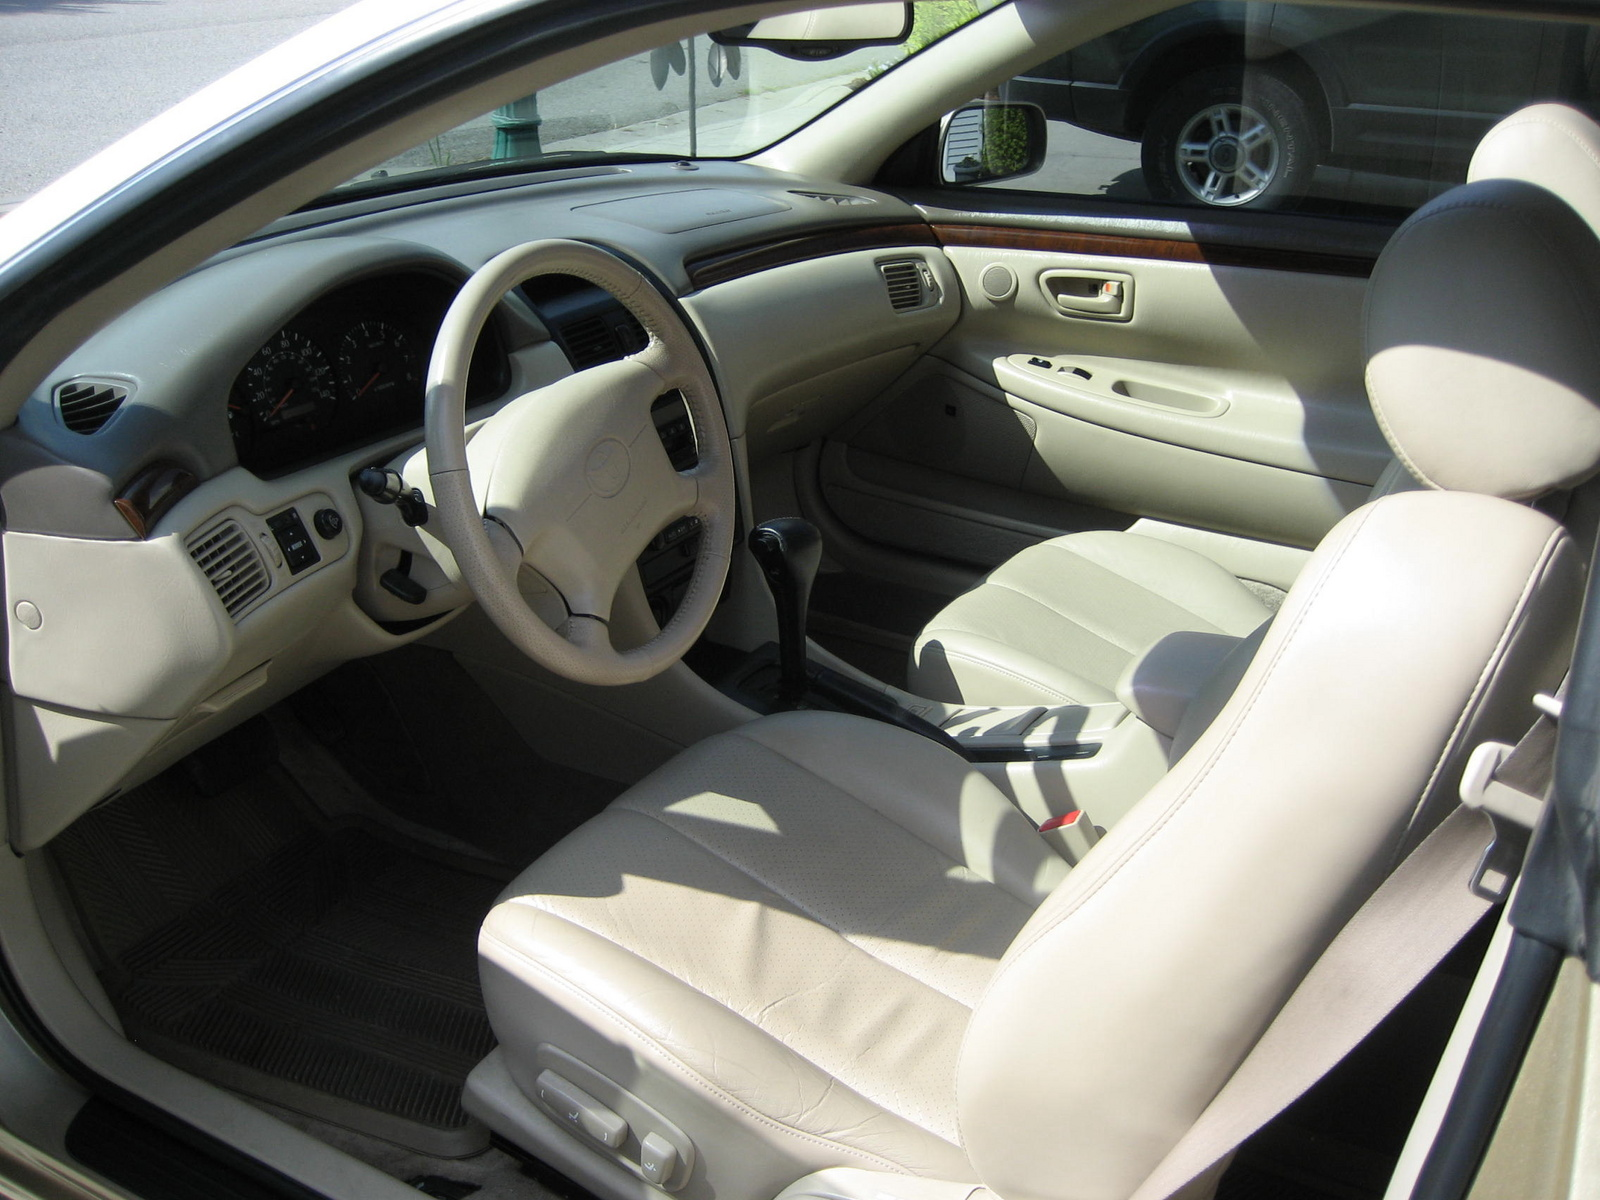 2000 Toyota Camry Solara Information And Photos Zombiedrive 2004 Interior 3